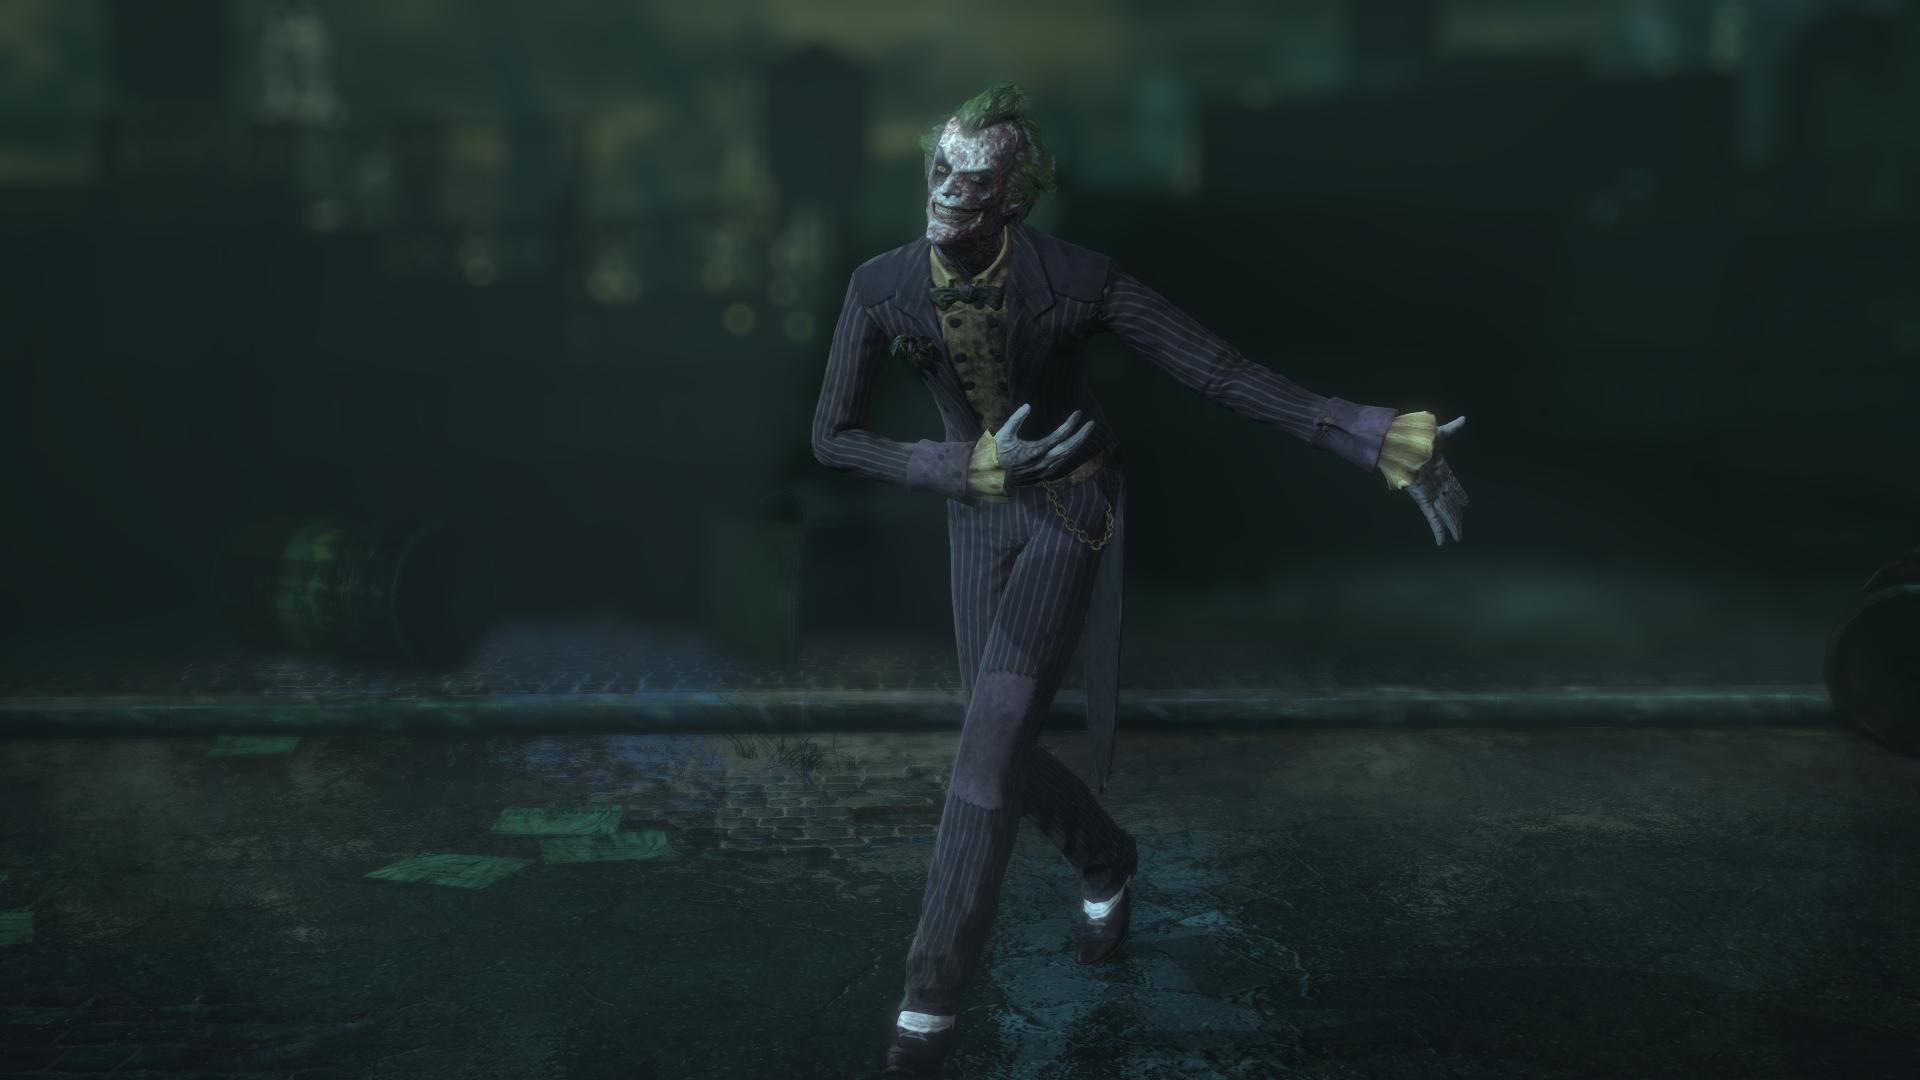 The Joker Sick Wallpapers HD